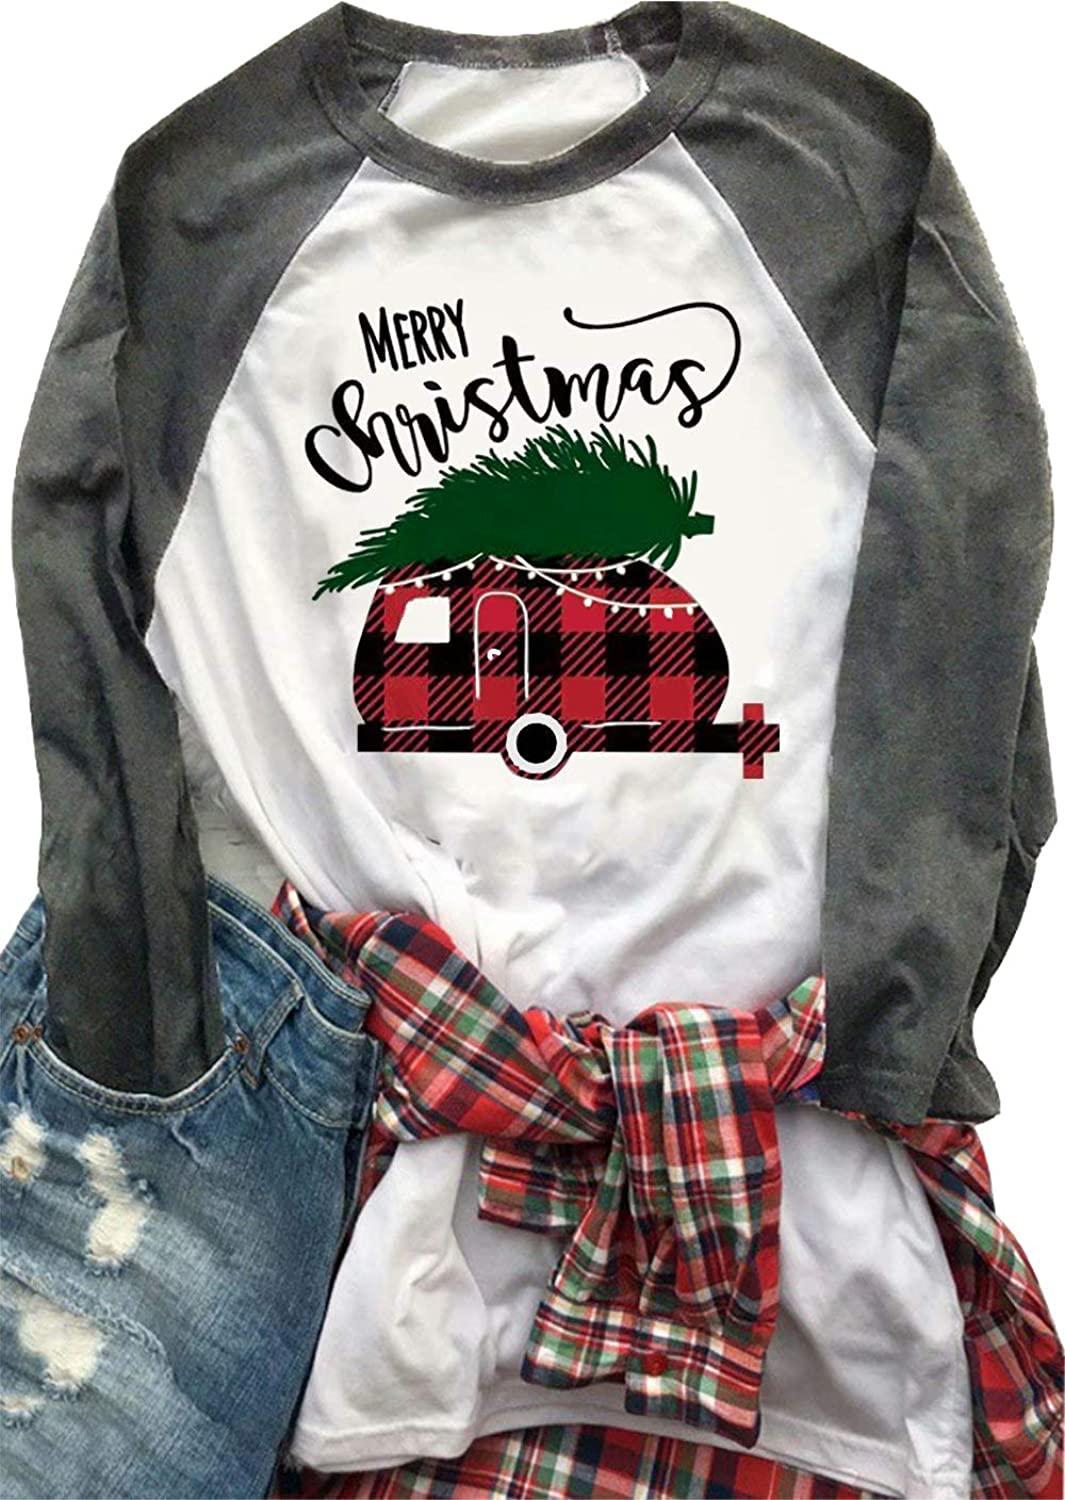 MAXIMGR Merry Christmas Raglan Tshirt Women's Christmas Tree Plaid Car 3 4 Sleeve Splicing Baseball Top Blouse